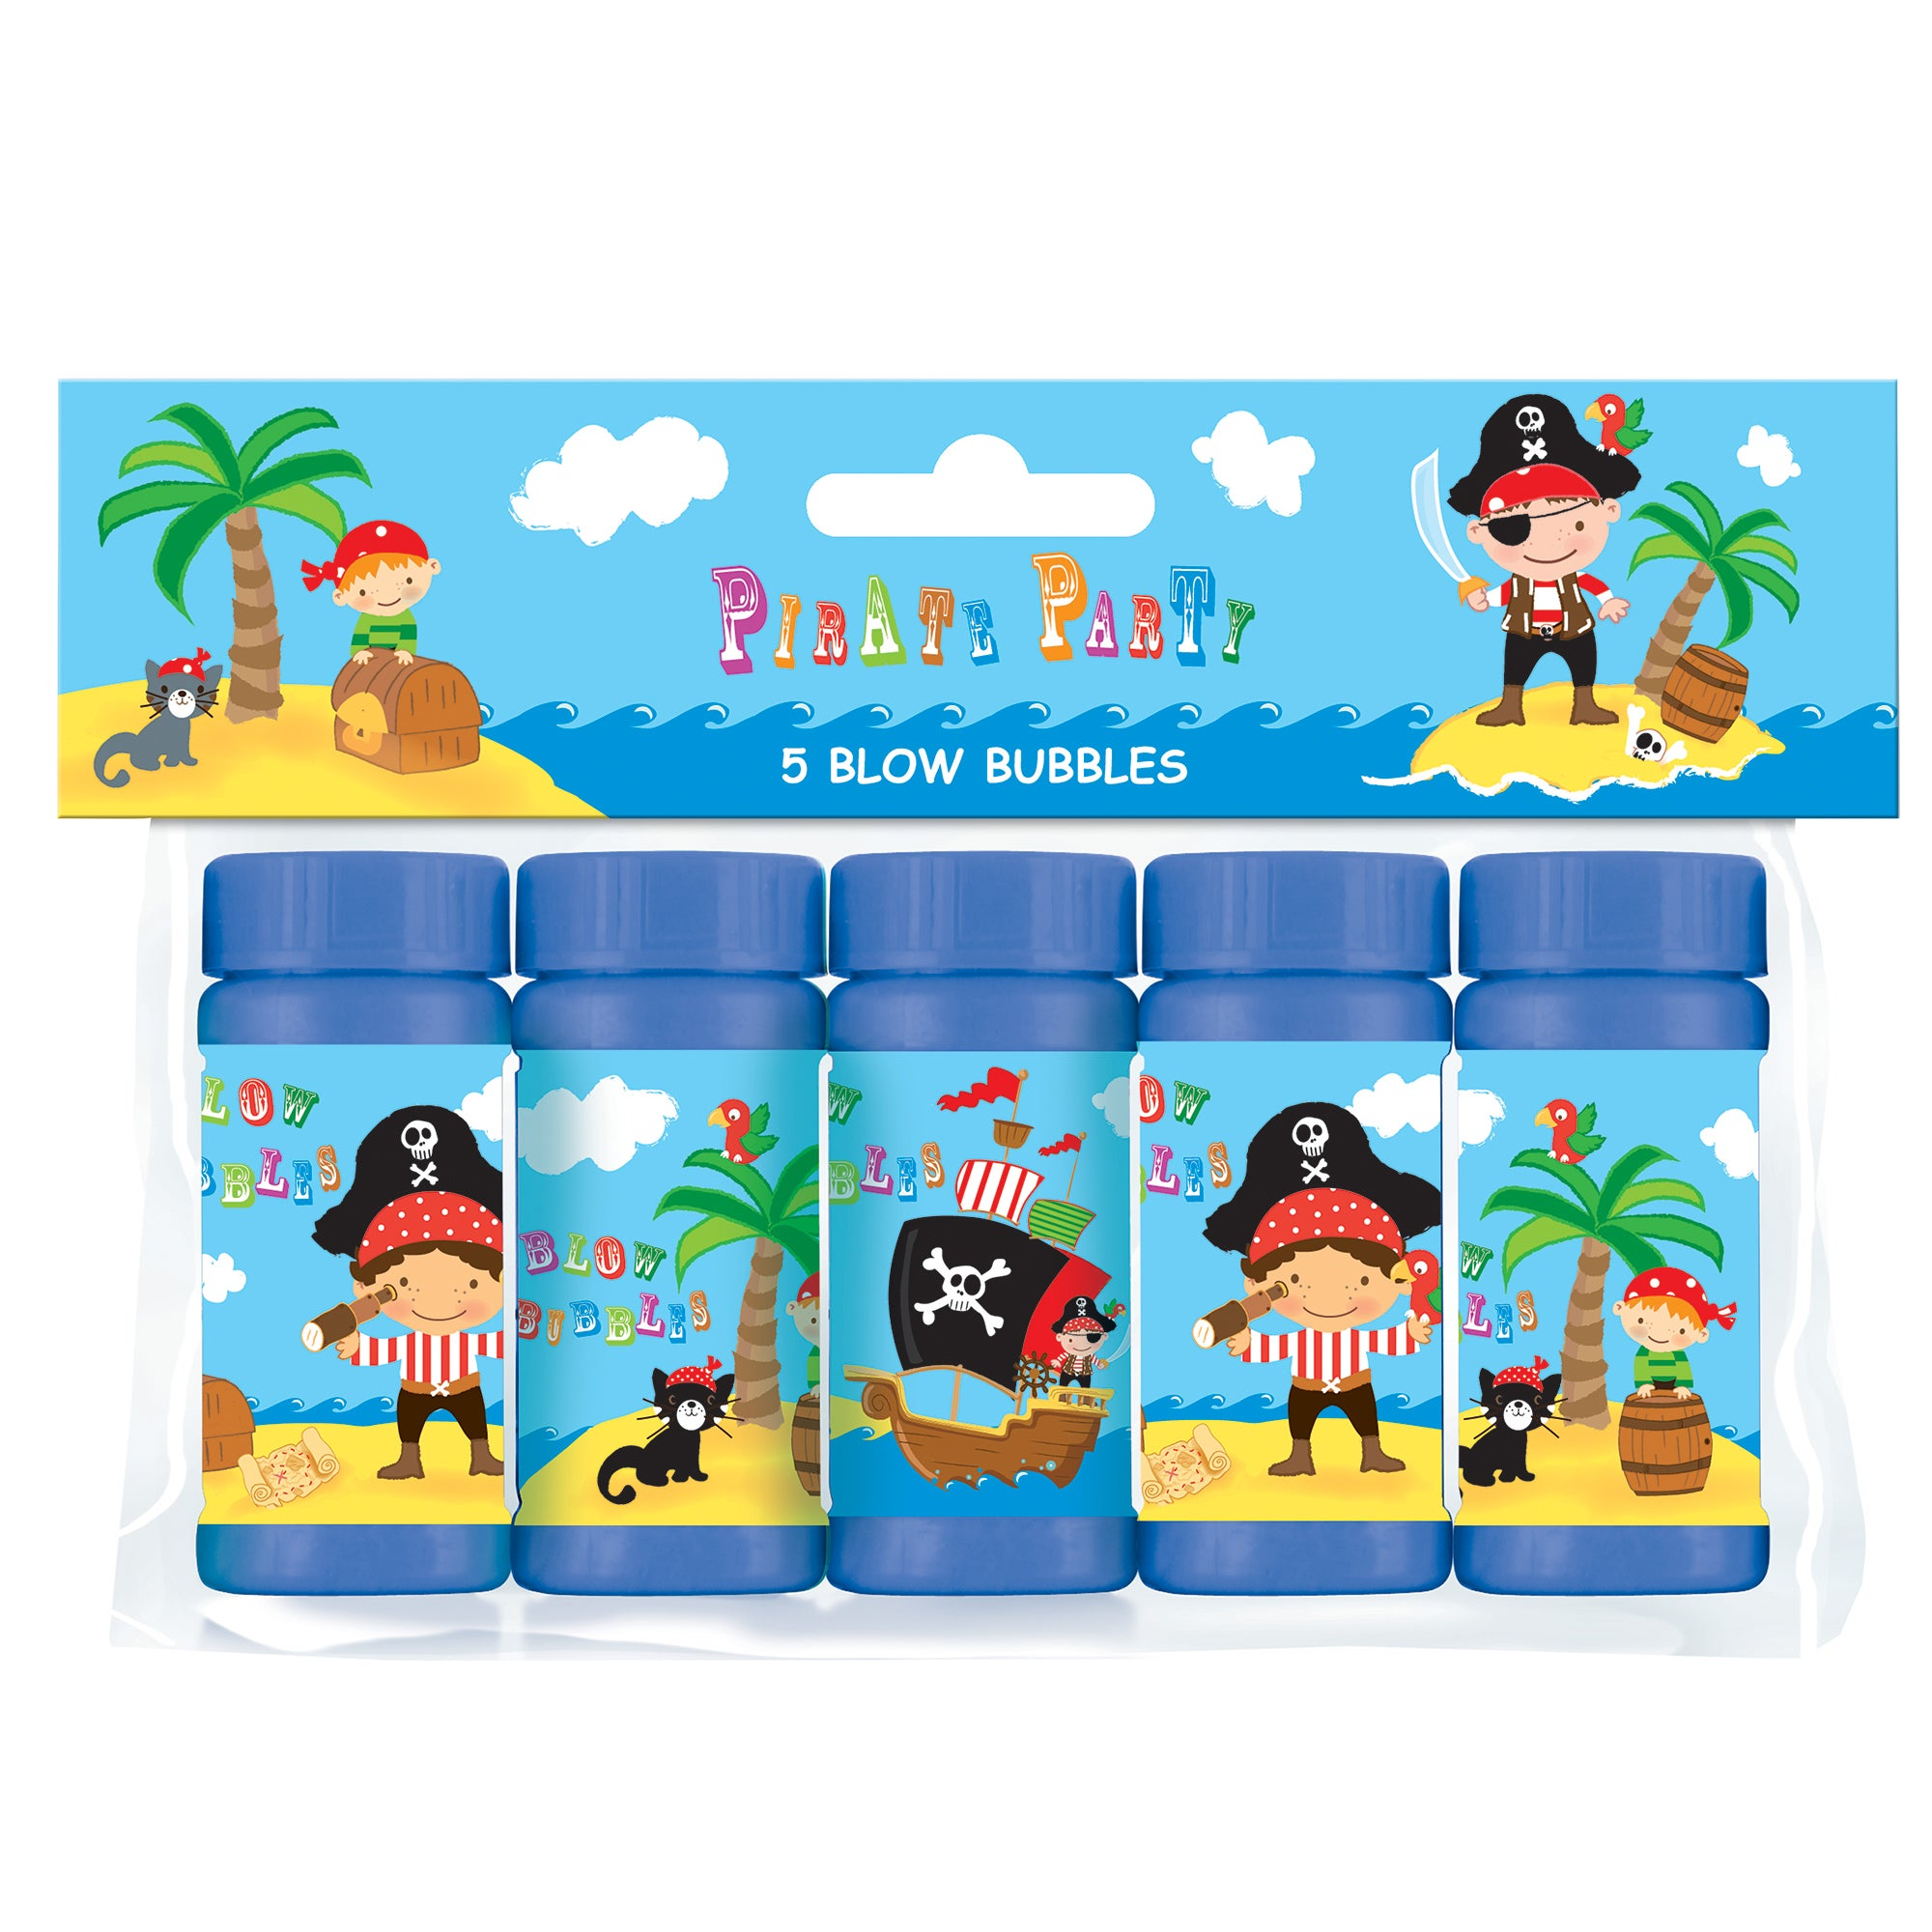 Pirate Party Blow Bubbles